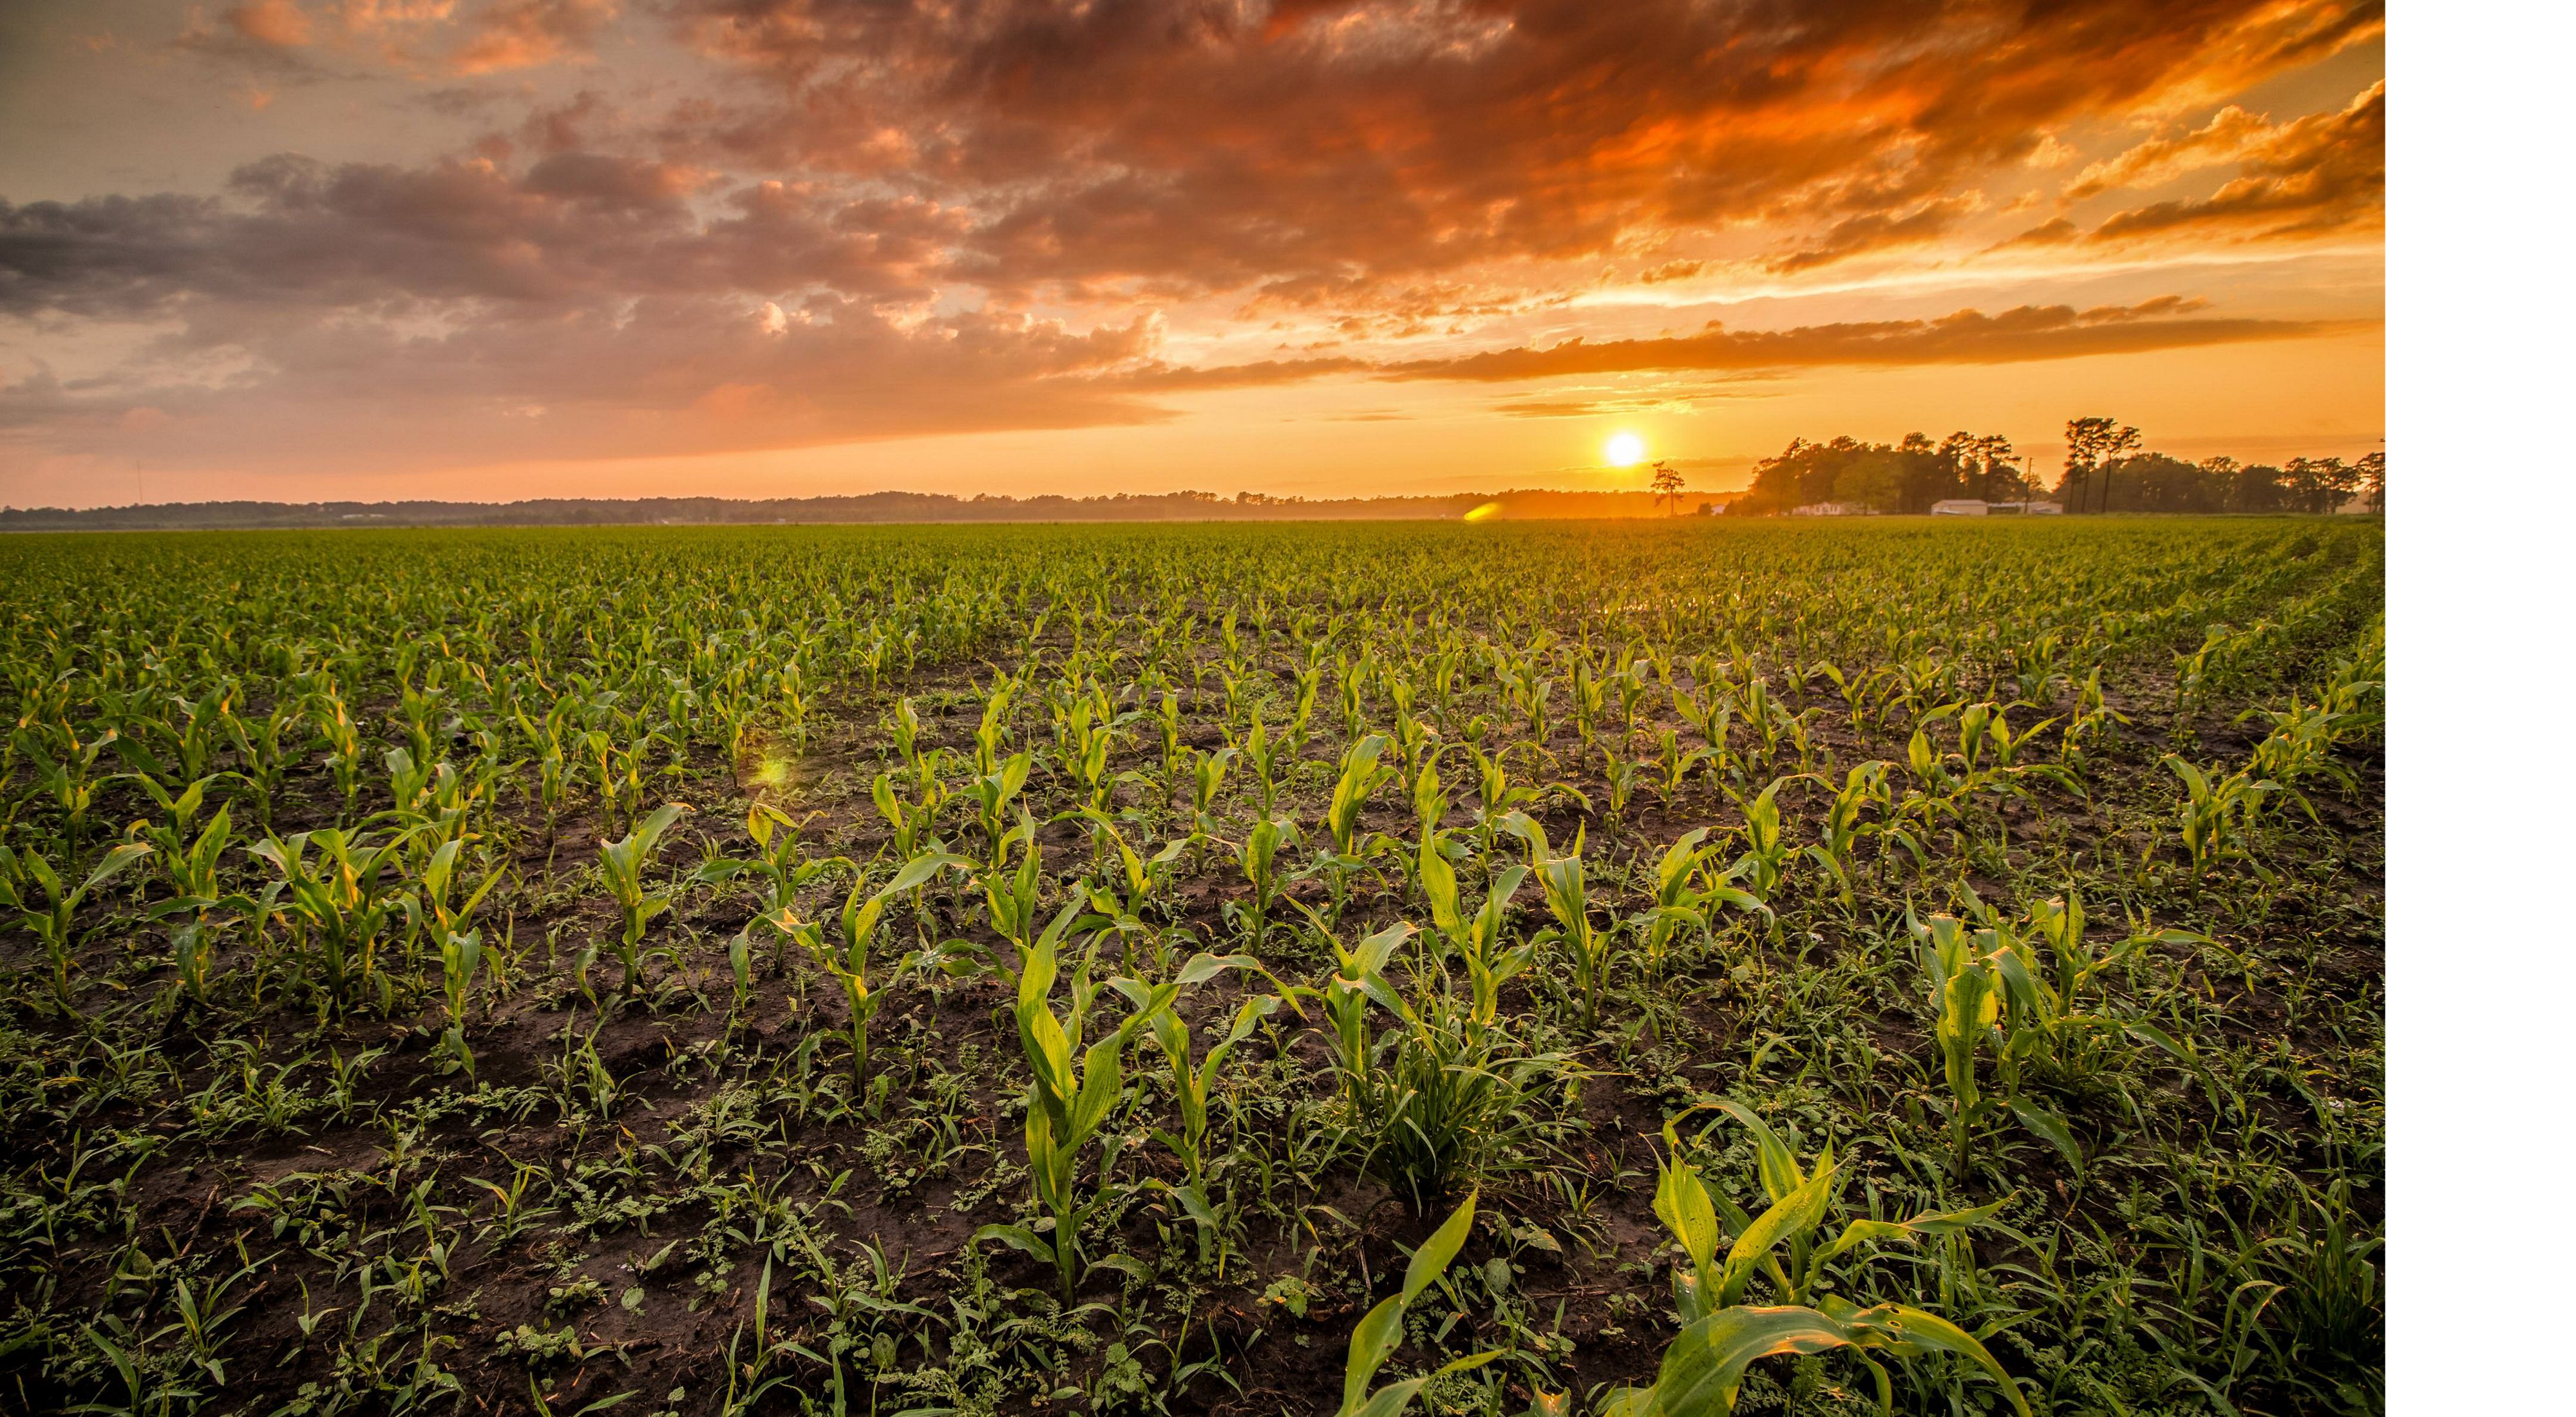 Corn fields outside of Arapahoe, North Carolina at sunset.